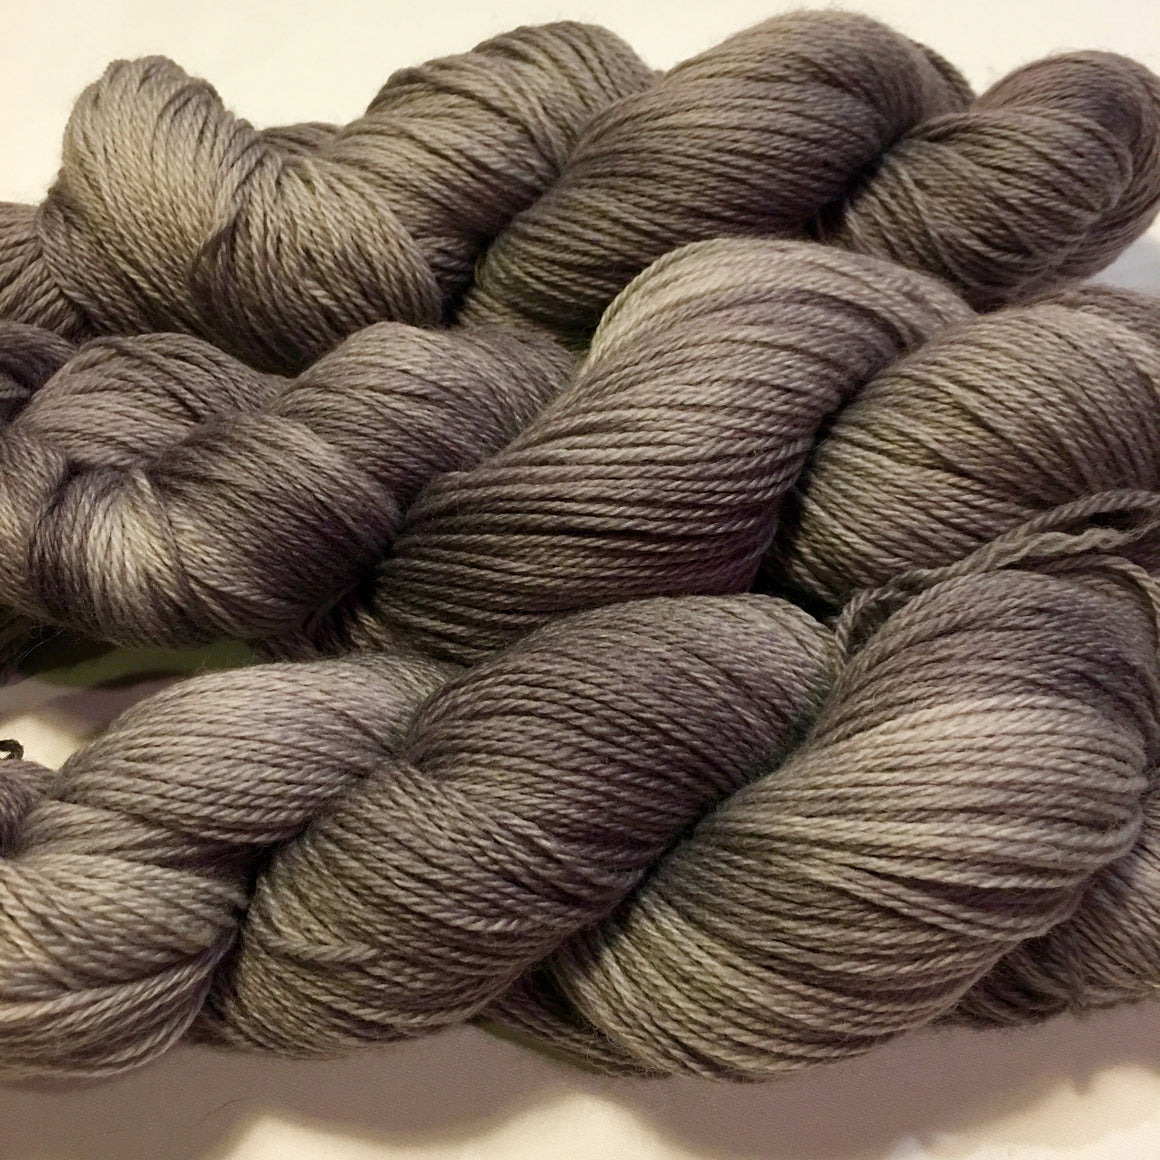 """Thunderstorm"" is deep gray tones on a fingering weight super wash merino yarn"